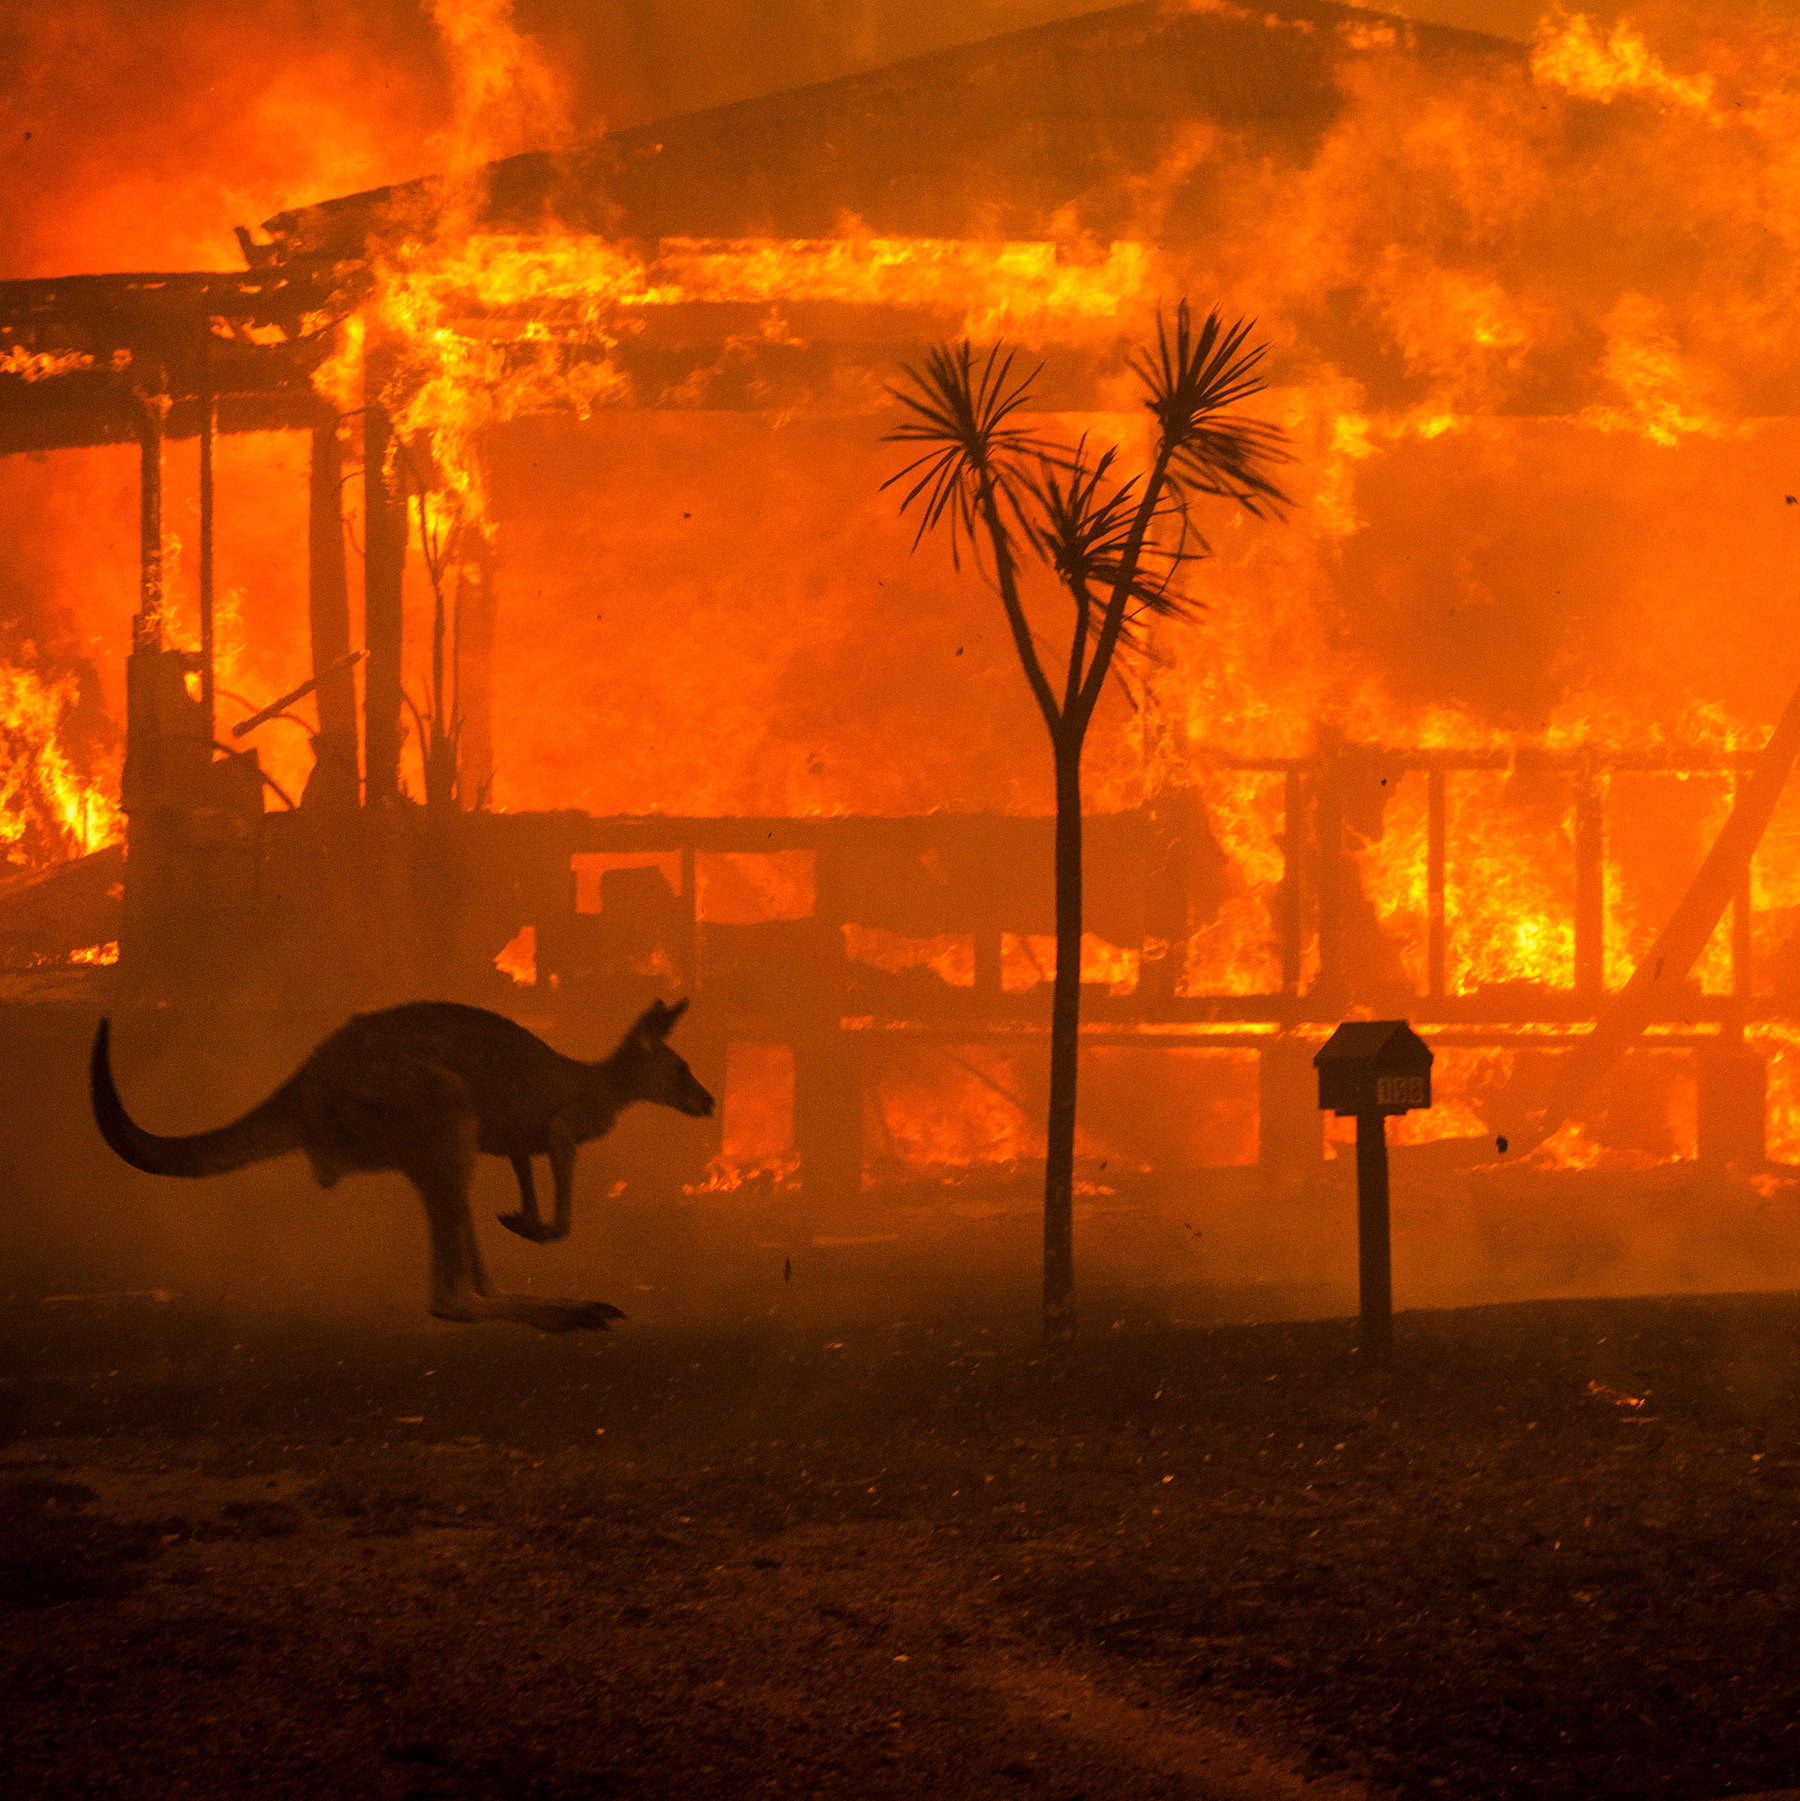 Australian Bushfires - January 2020